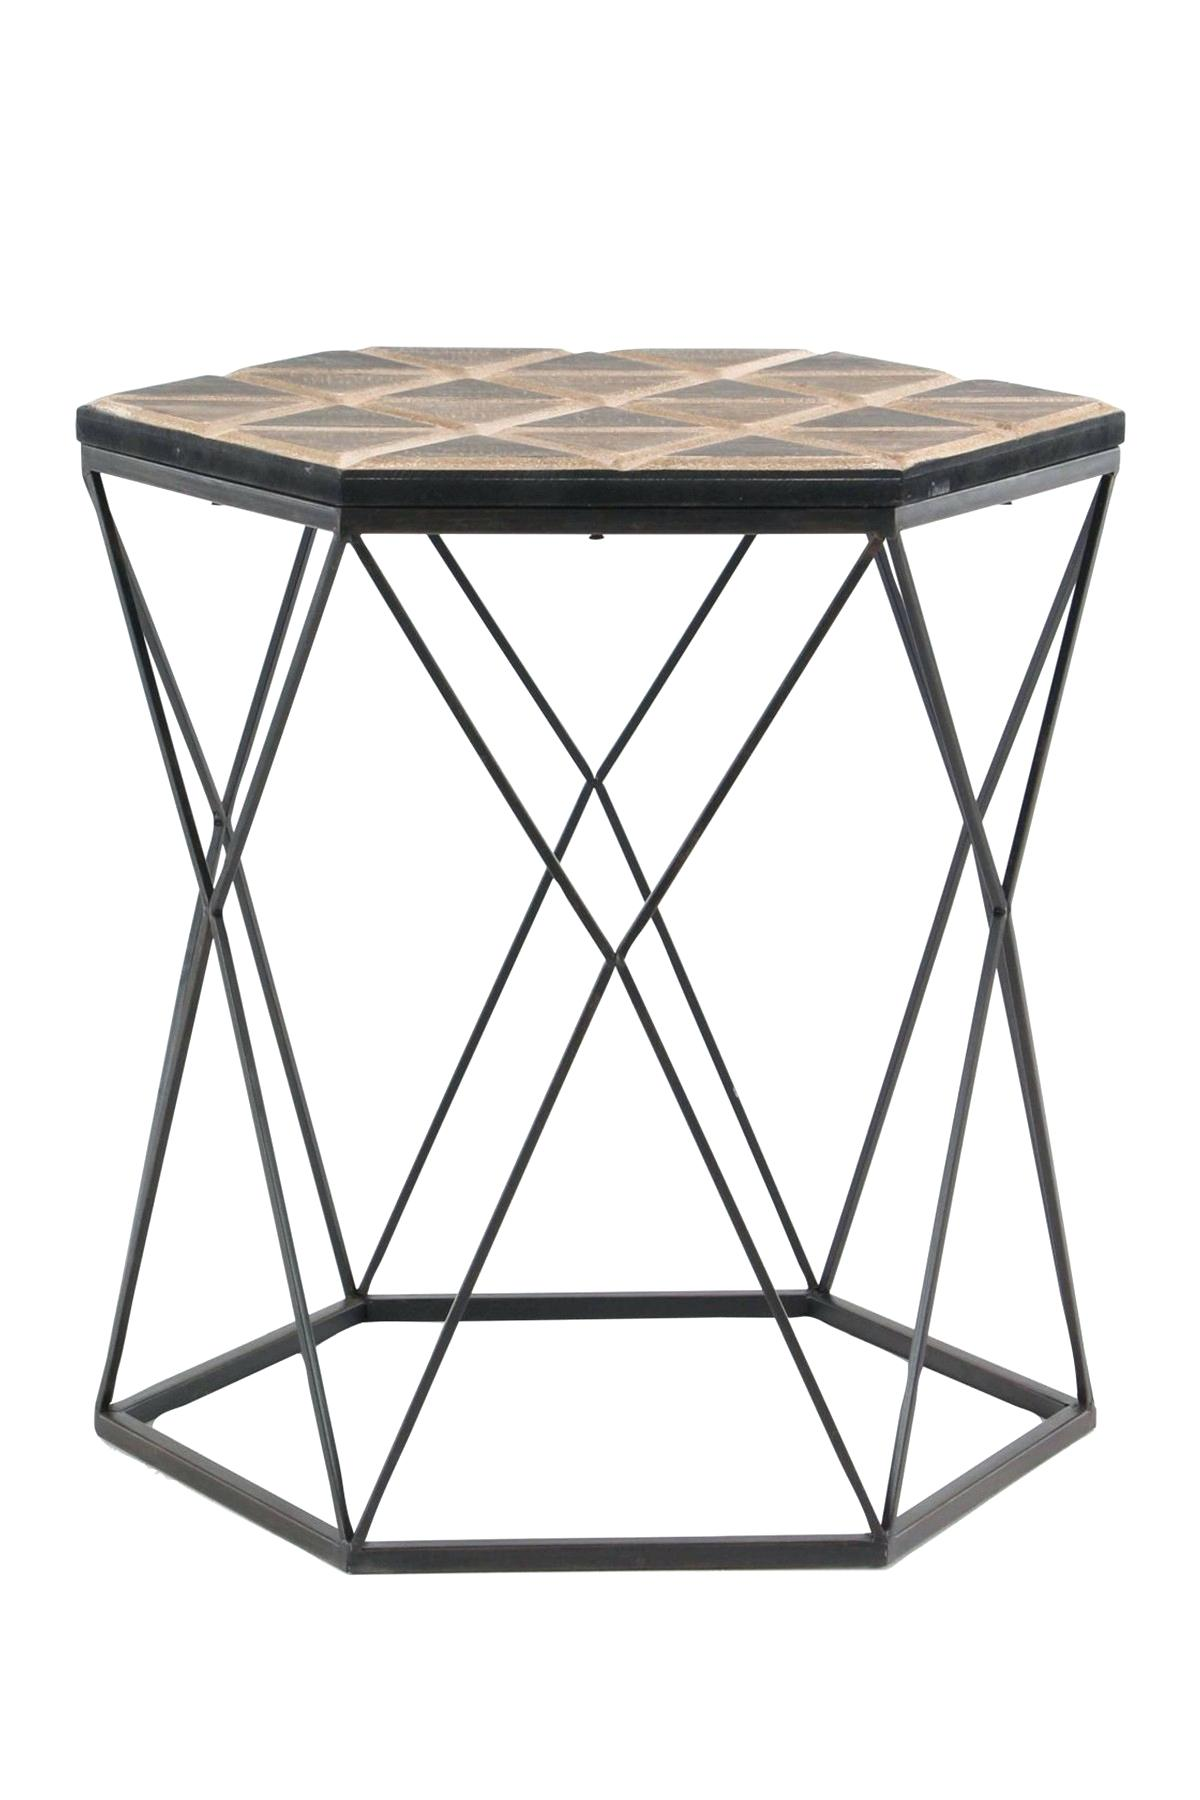 wood accent table mango round brown gray metal faux target narrow farm end tables and lamps front door entry collapsible shelf modern outdoor coffee kitchen stanley furniture